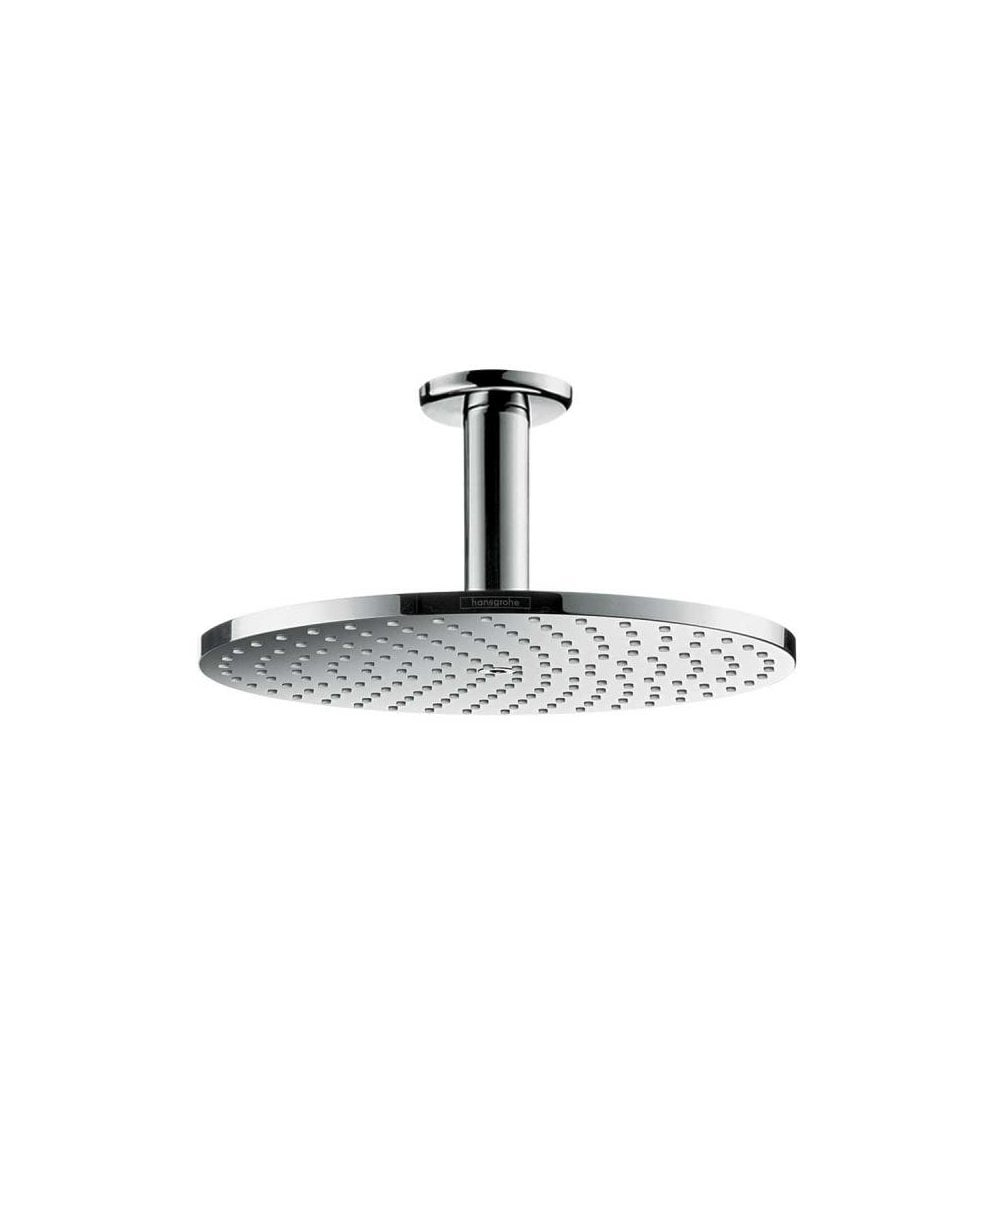 Hansgrohe Raindance S 240 1jet P Overhead Shower With 100mm Ceiling Shower Arm Powderrain